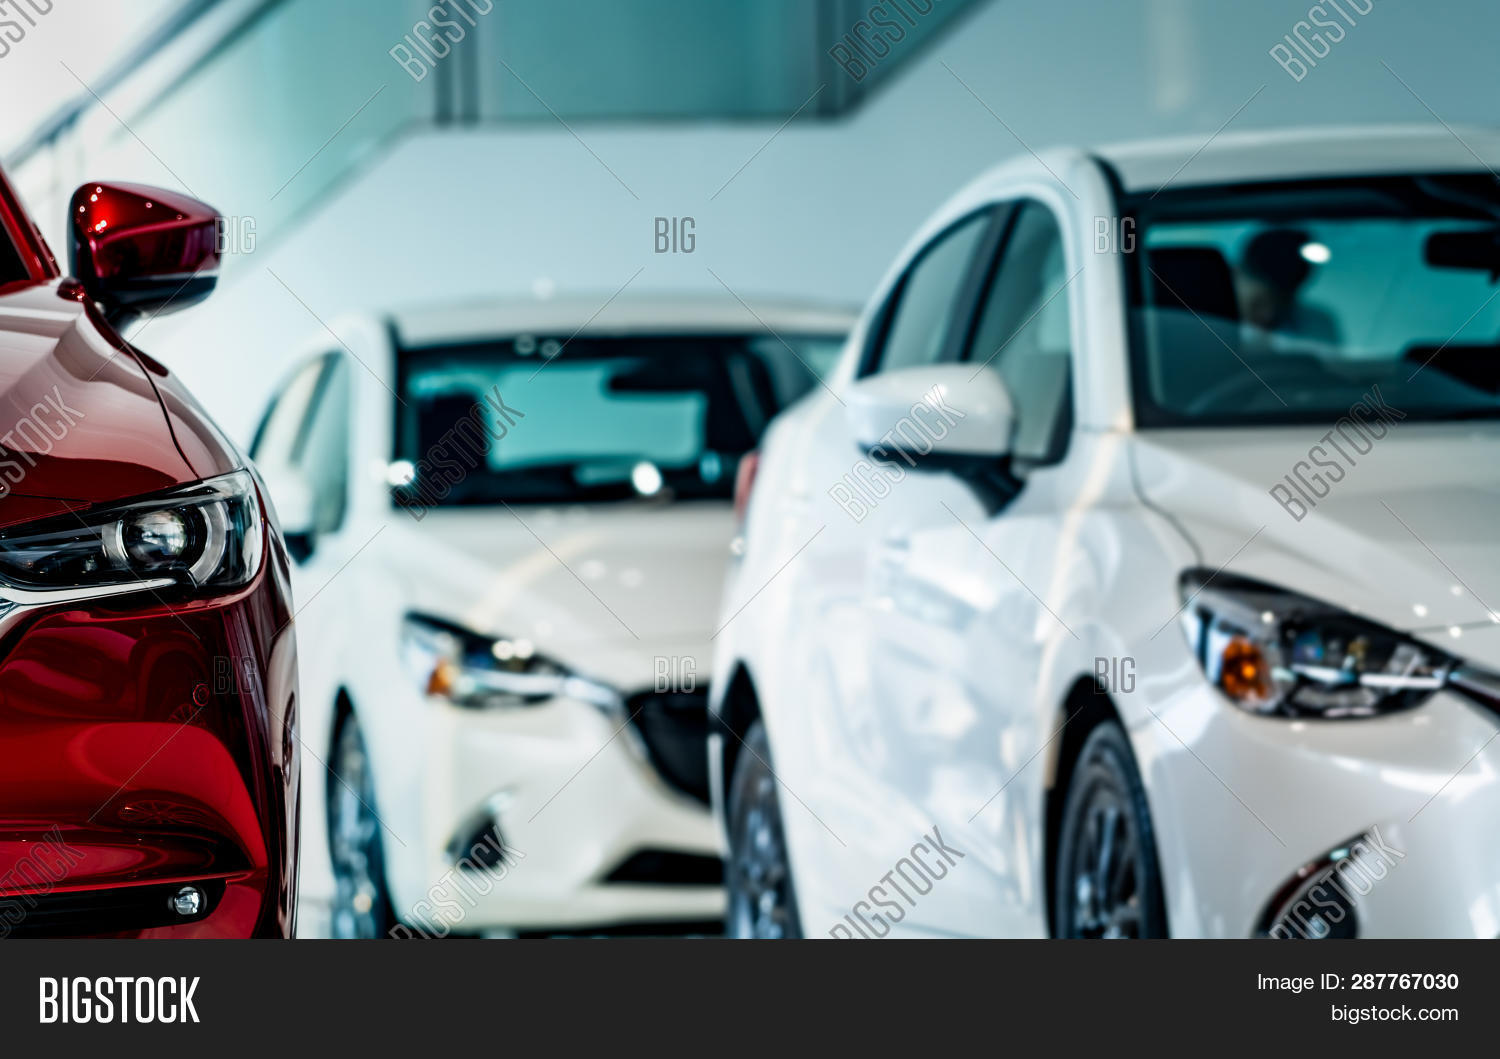 auto,automobile,automotive,background,business,car,compact,concept,dealer,dealership,drive,electric,energy,ev,factory,front,headlamp,hybrid,indoors,industrial,industry,interior,luxury,model,modern,motor,new,park,power,production,red,rental,retail,room,safety,sales,service,shiny,showroom,stock,store,style,suv,technology,transport,transportation,vehicle,view,wheel,white